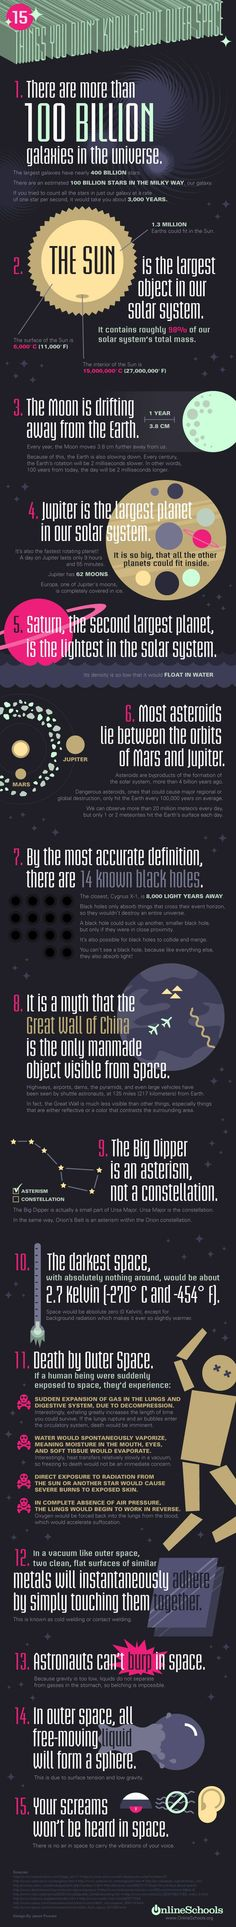 Things you didn't know about outer space.